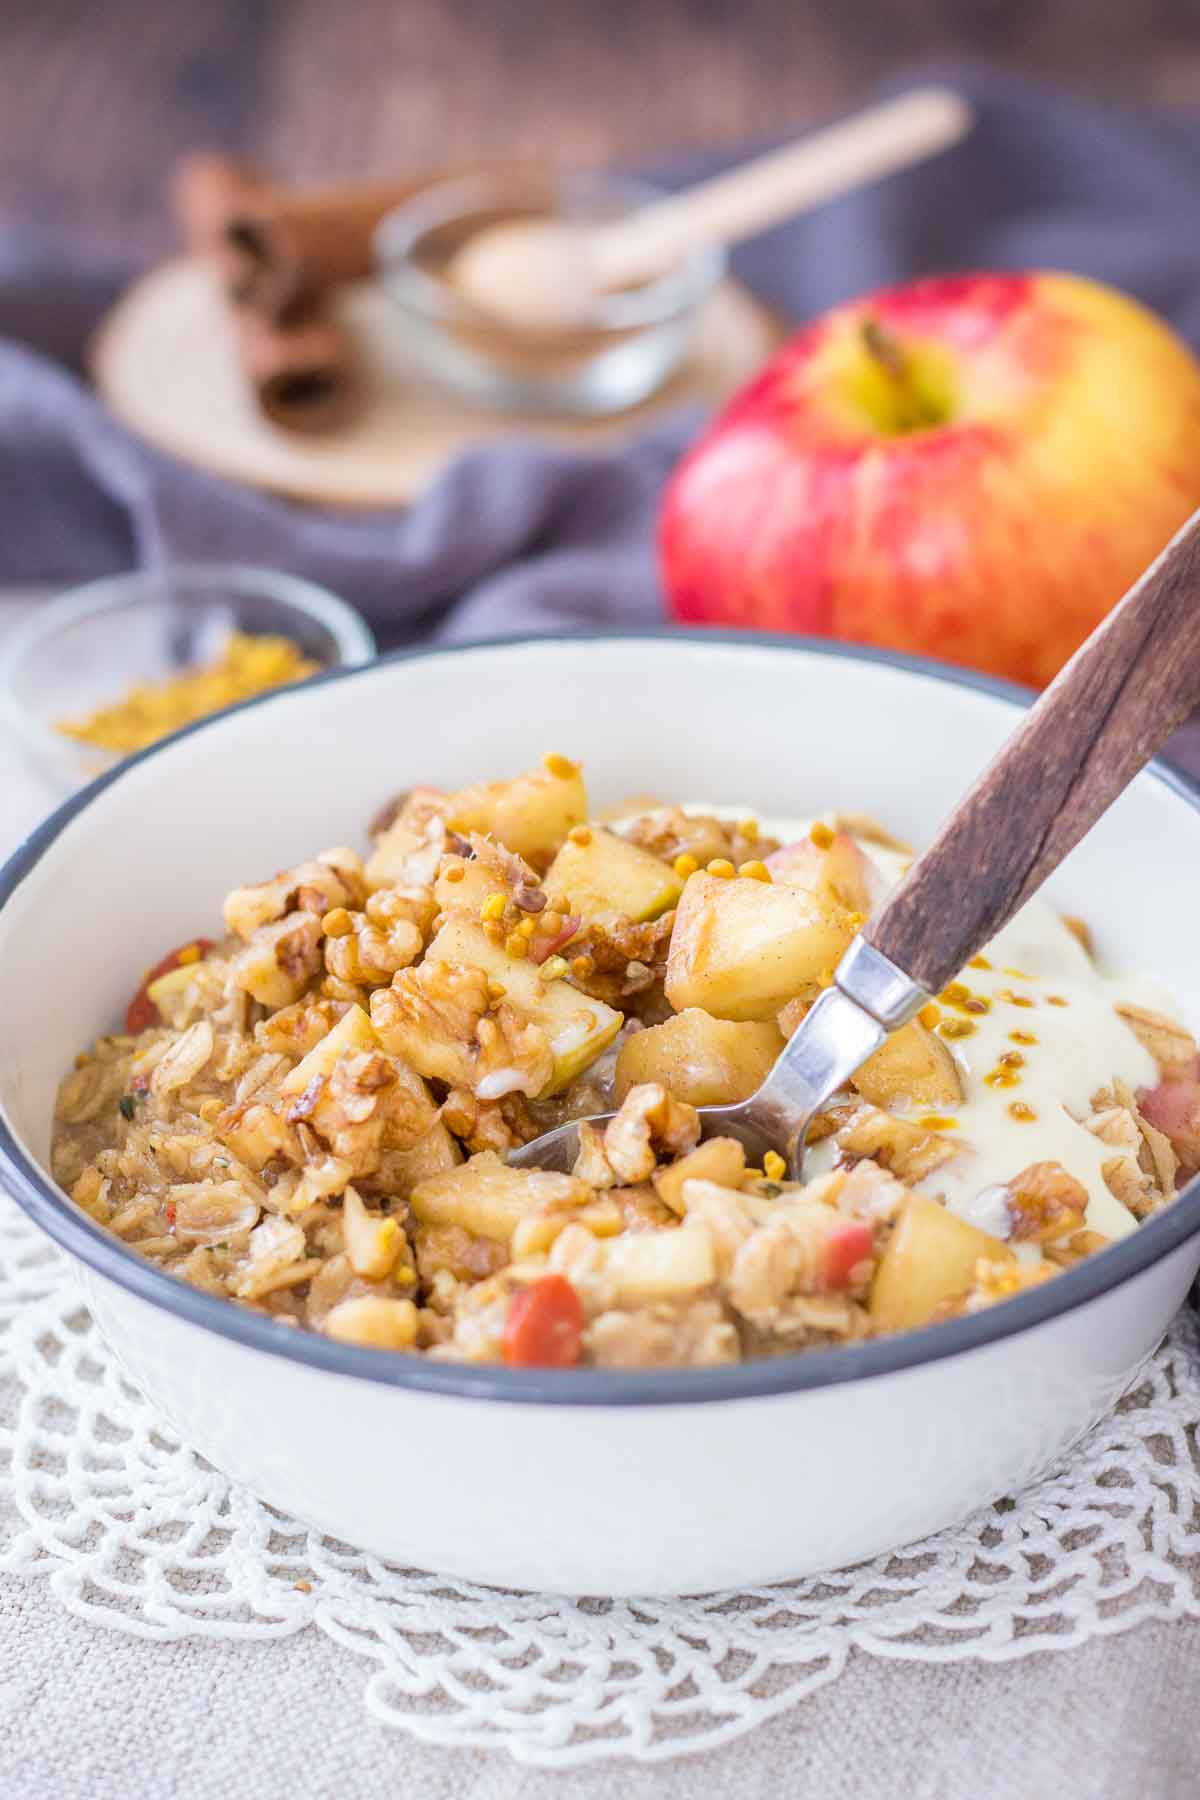 Apple Cinnamon Oatmeal served in a bowl topped with diced apples, walnuts and yogurt